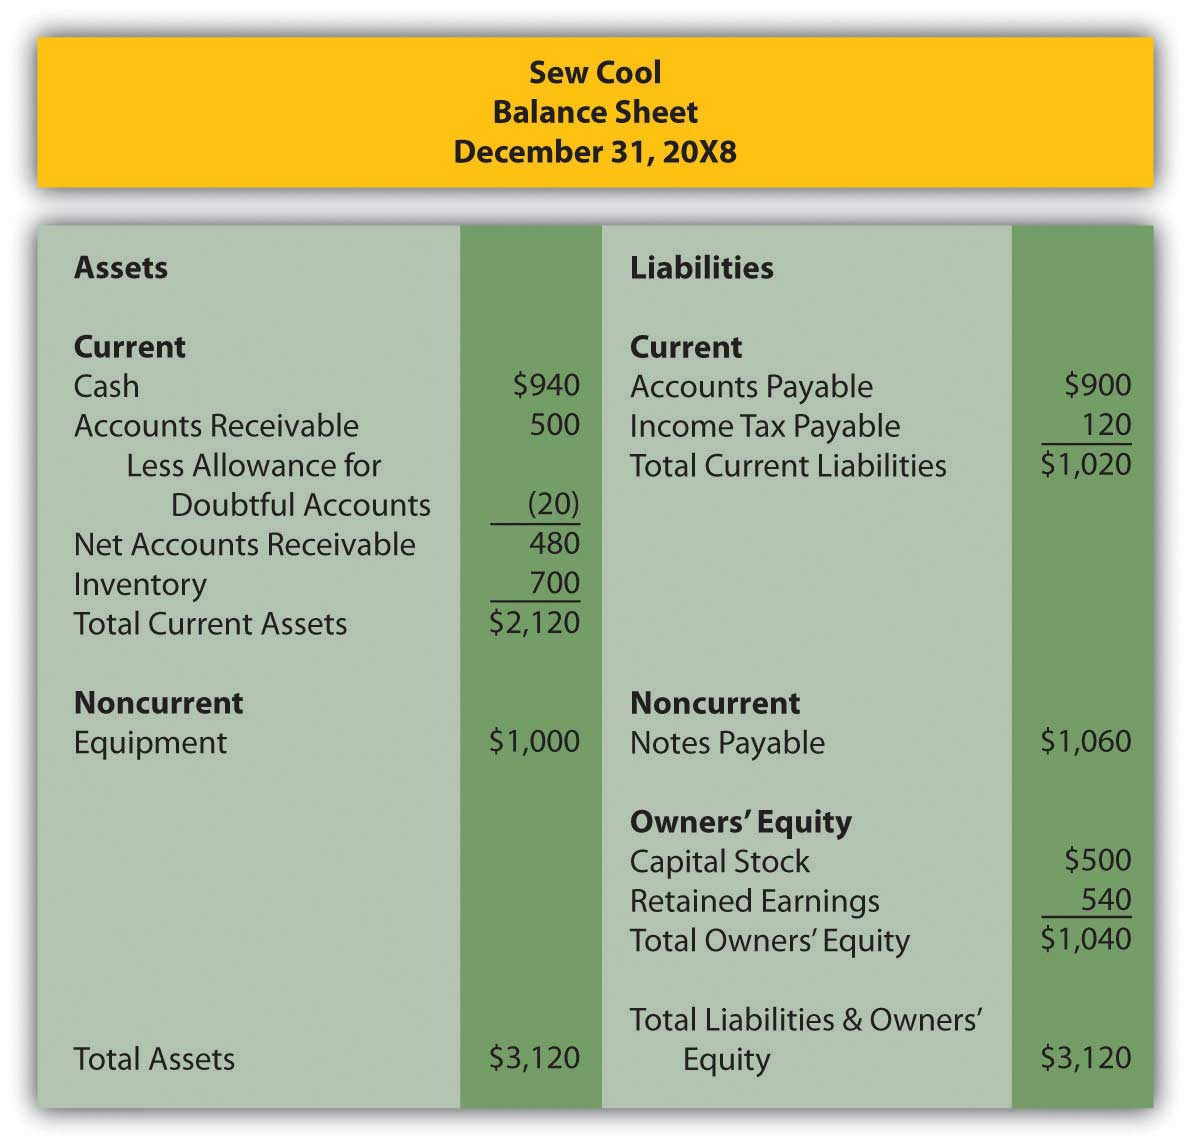 Sew Cool's Balance Sheet